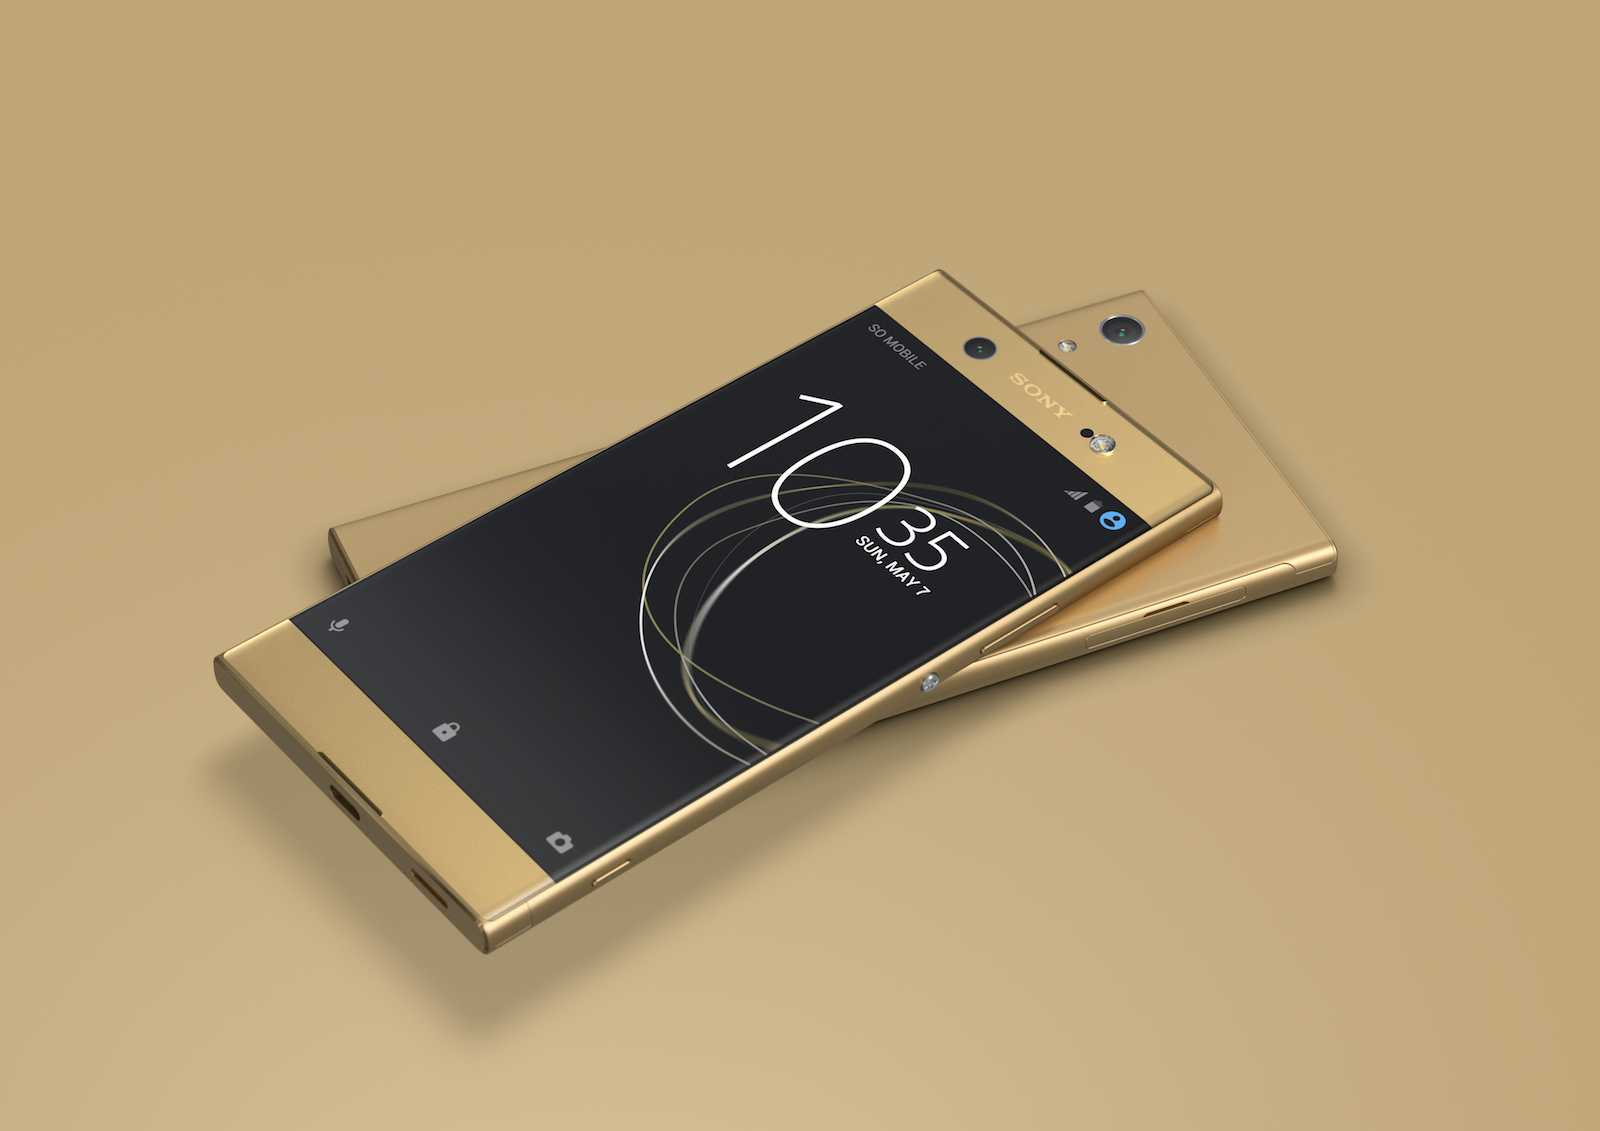 Sony Xperia XA1 Ultra full specifications